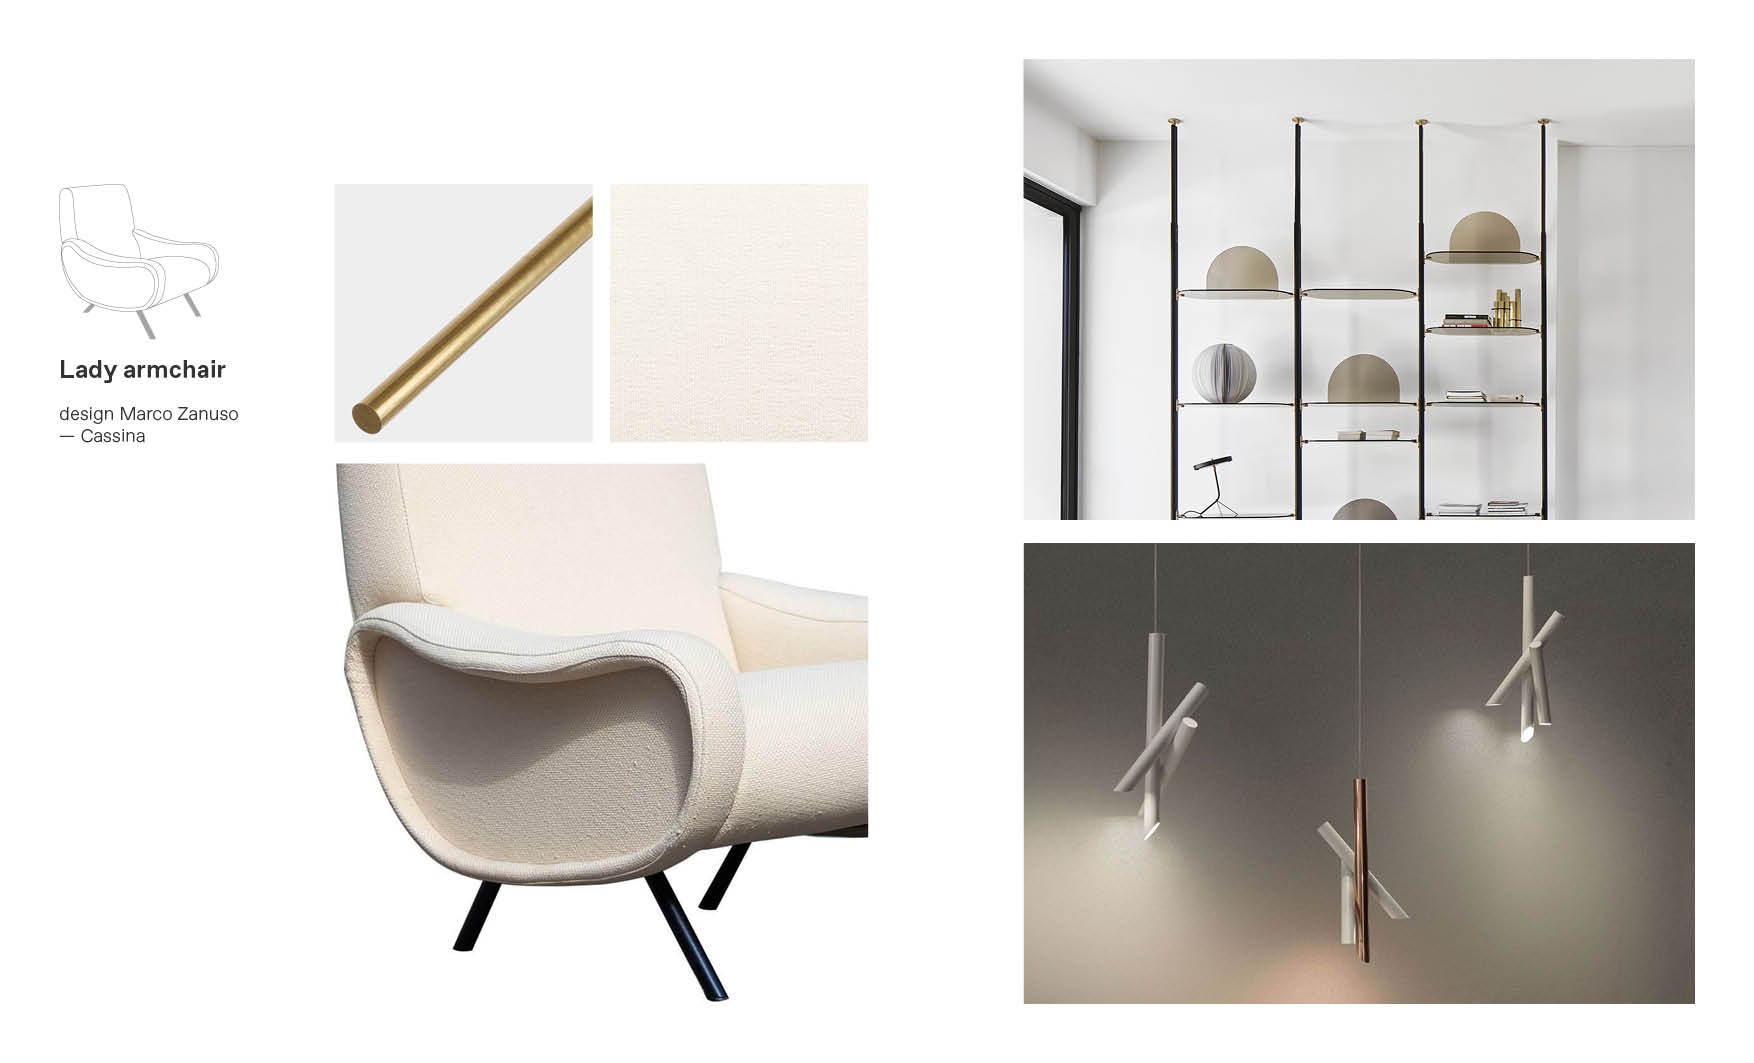 Lady Cassina armchair moodboard composition